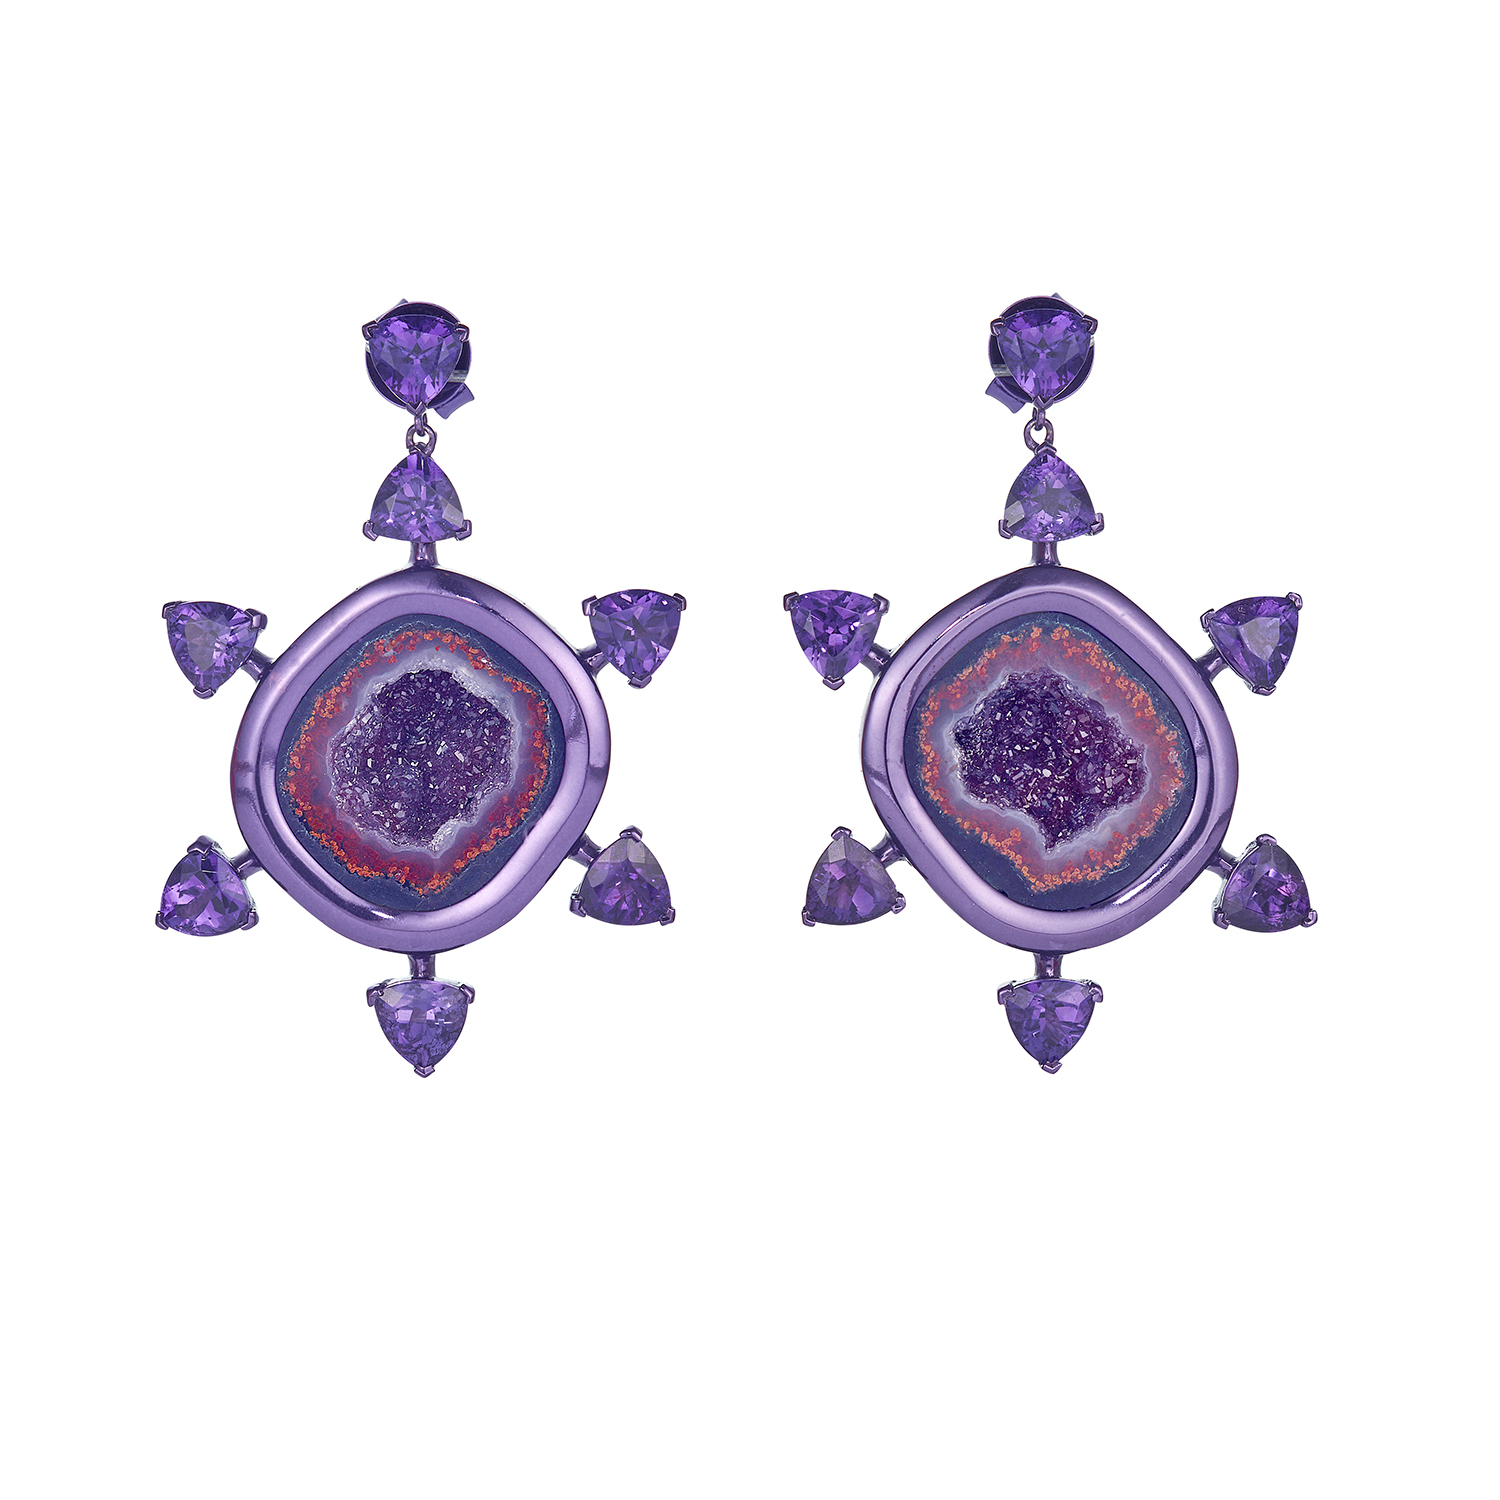 Chromanteq Geode Earrings.jpg